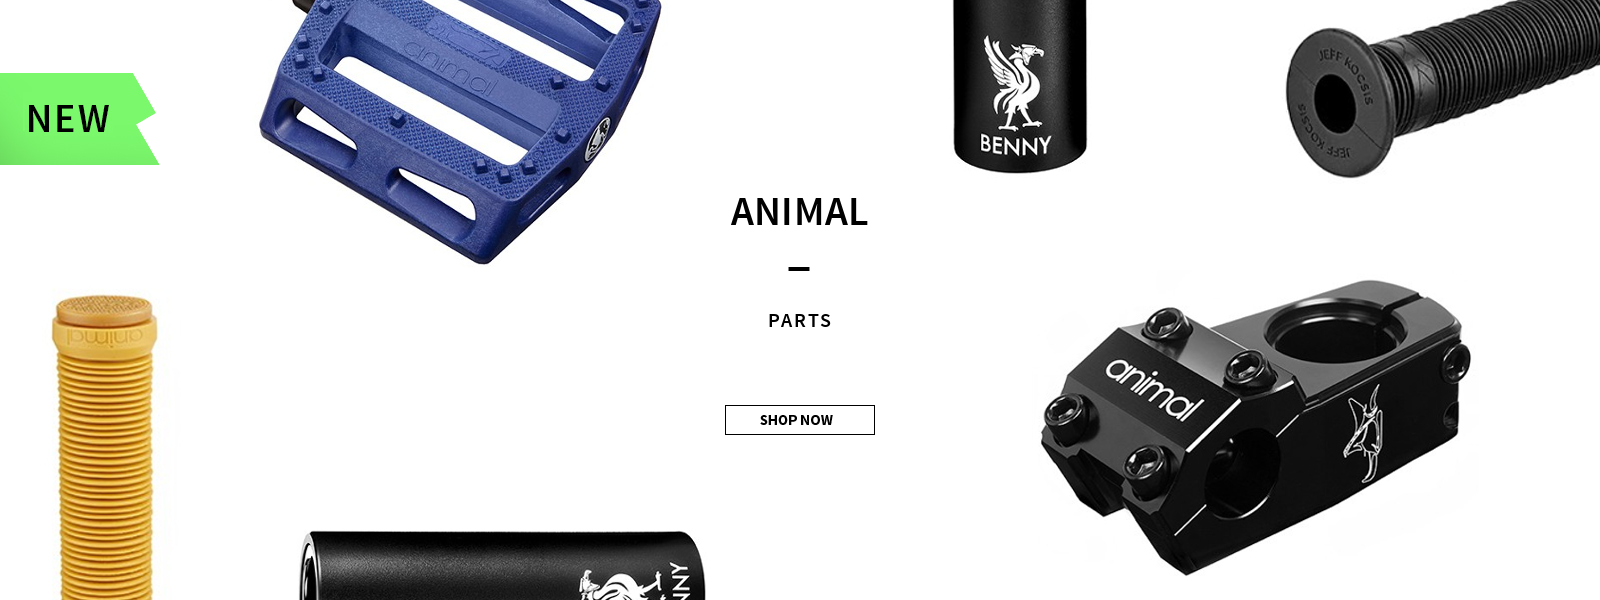 Neue Animal Parts bei www.peoplesstore.de